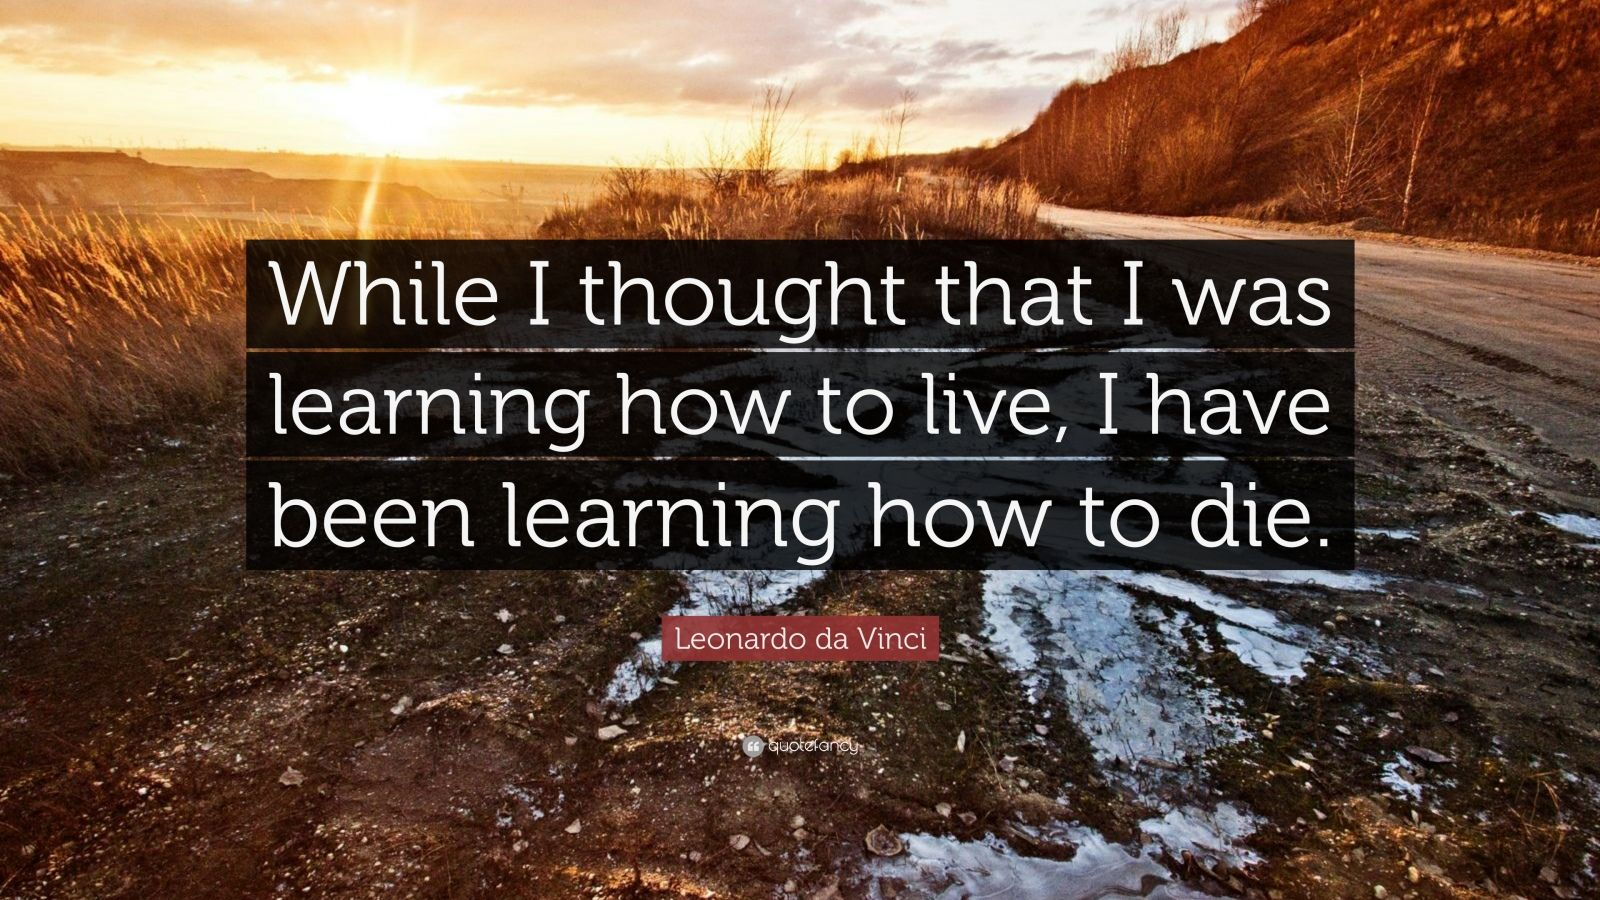 """Leonardo da Vinci Quote: """"While I thought that I was learning how to live, I have been learning how to die."""""""